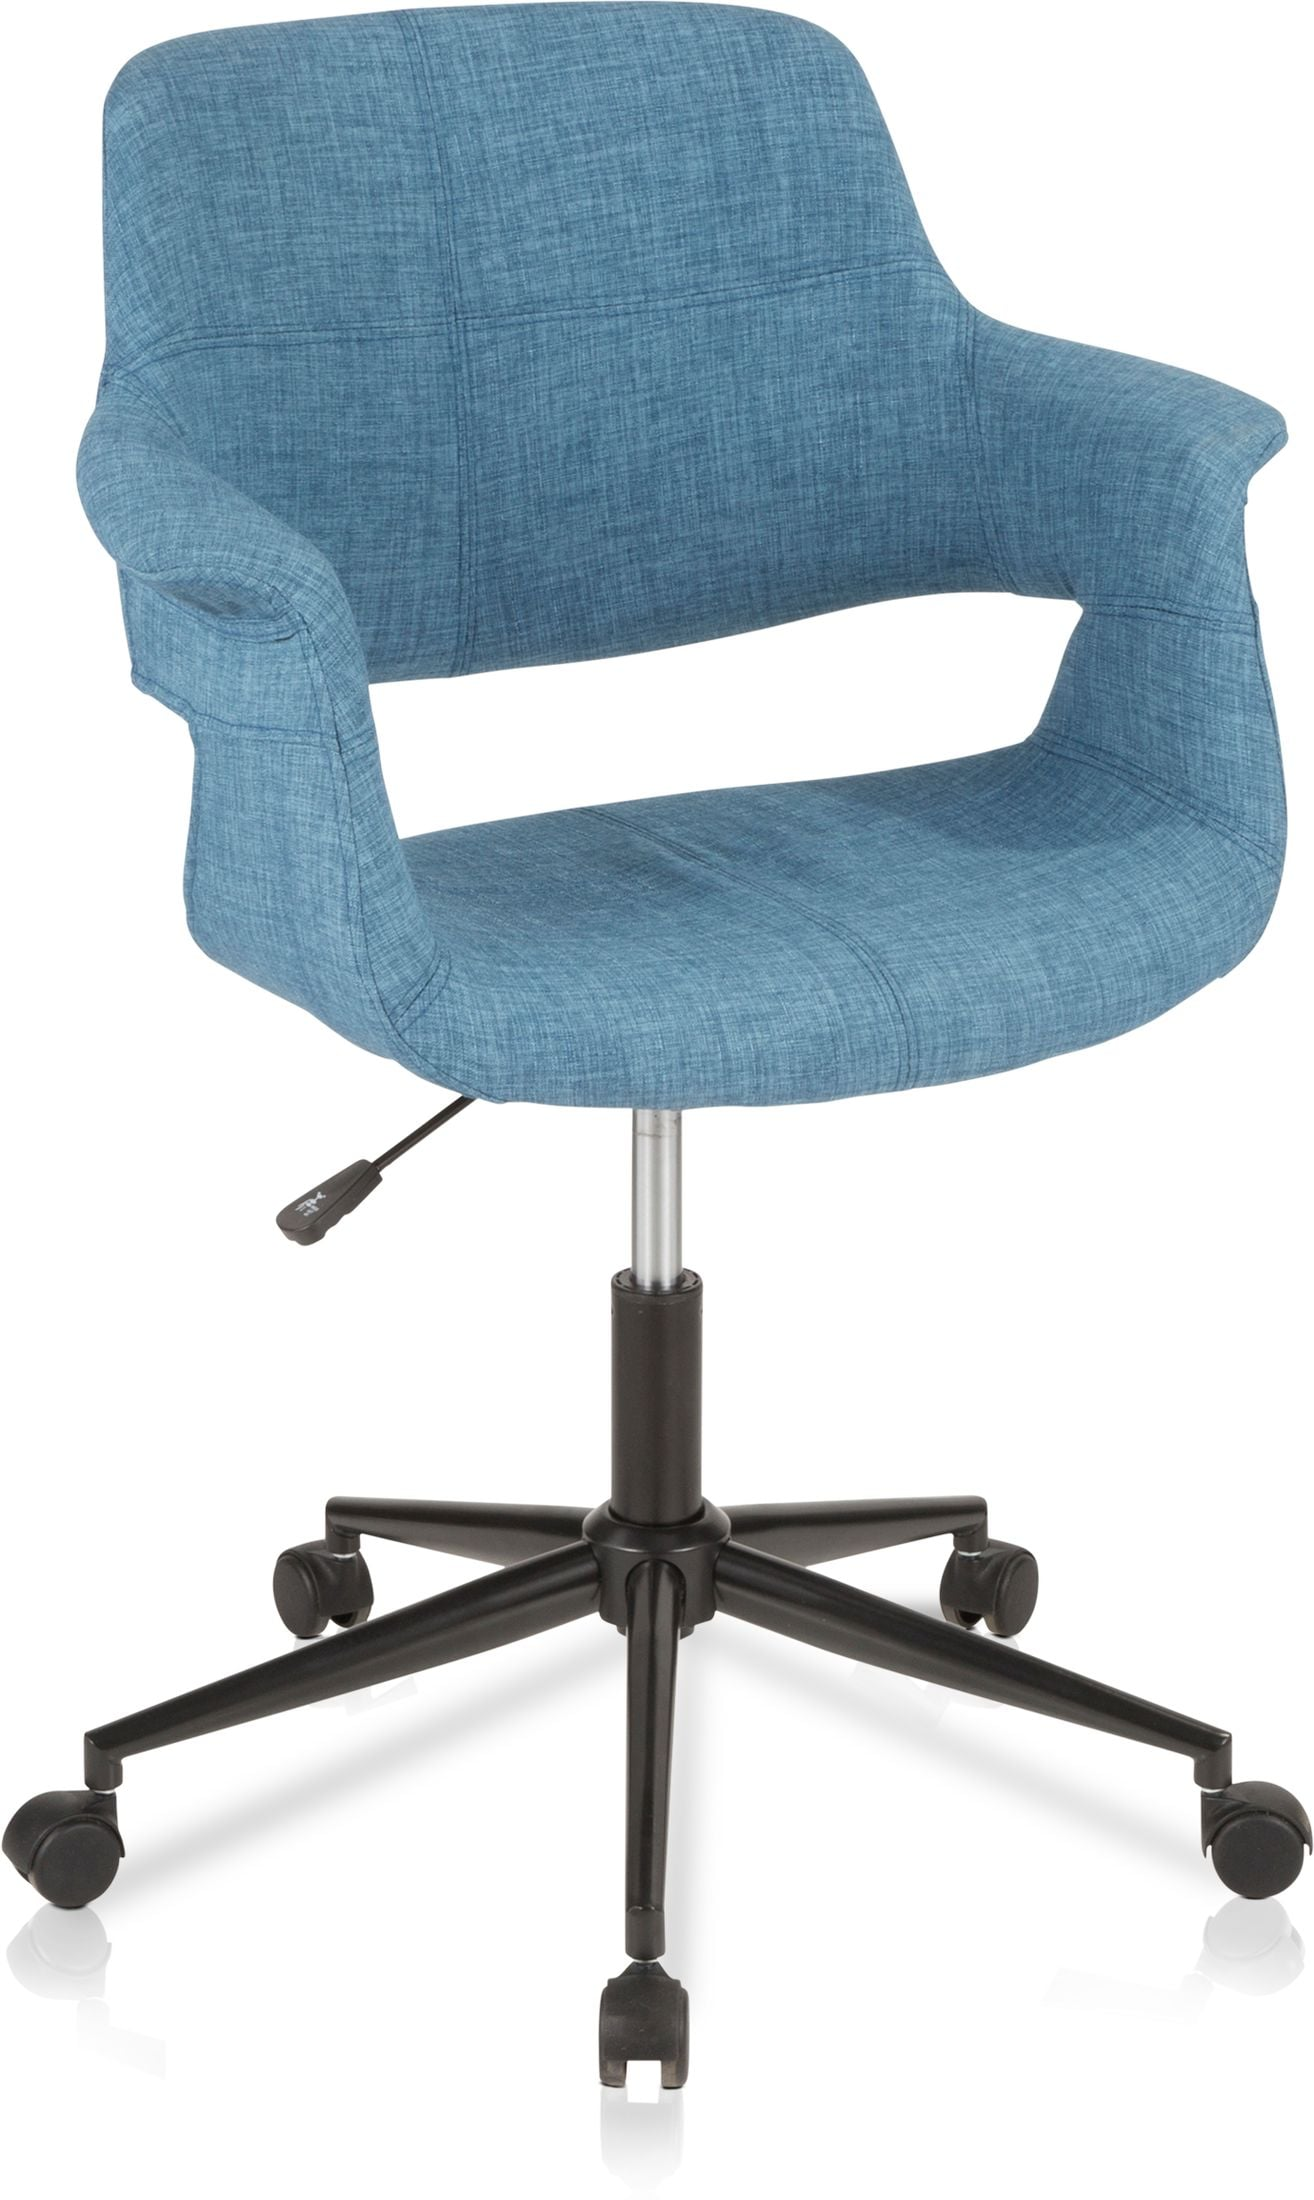 Home Office Furniture - Aiden Office Chair